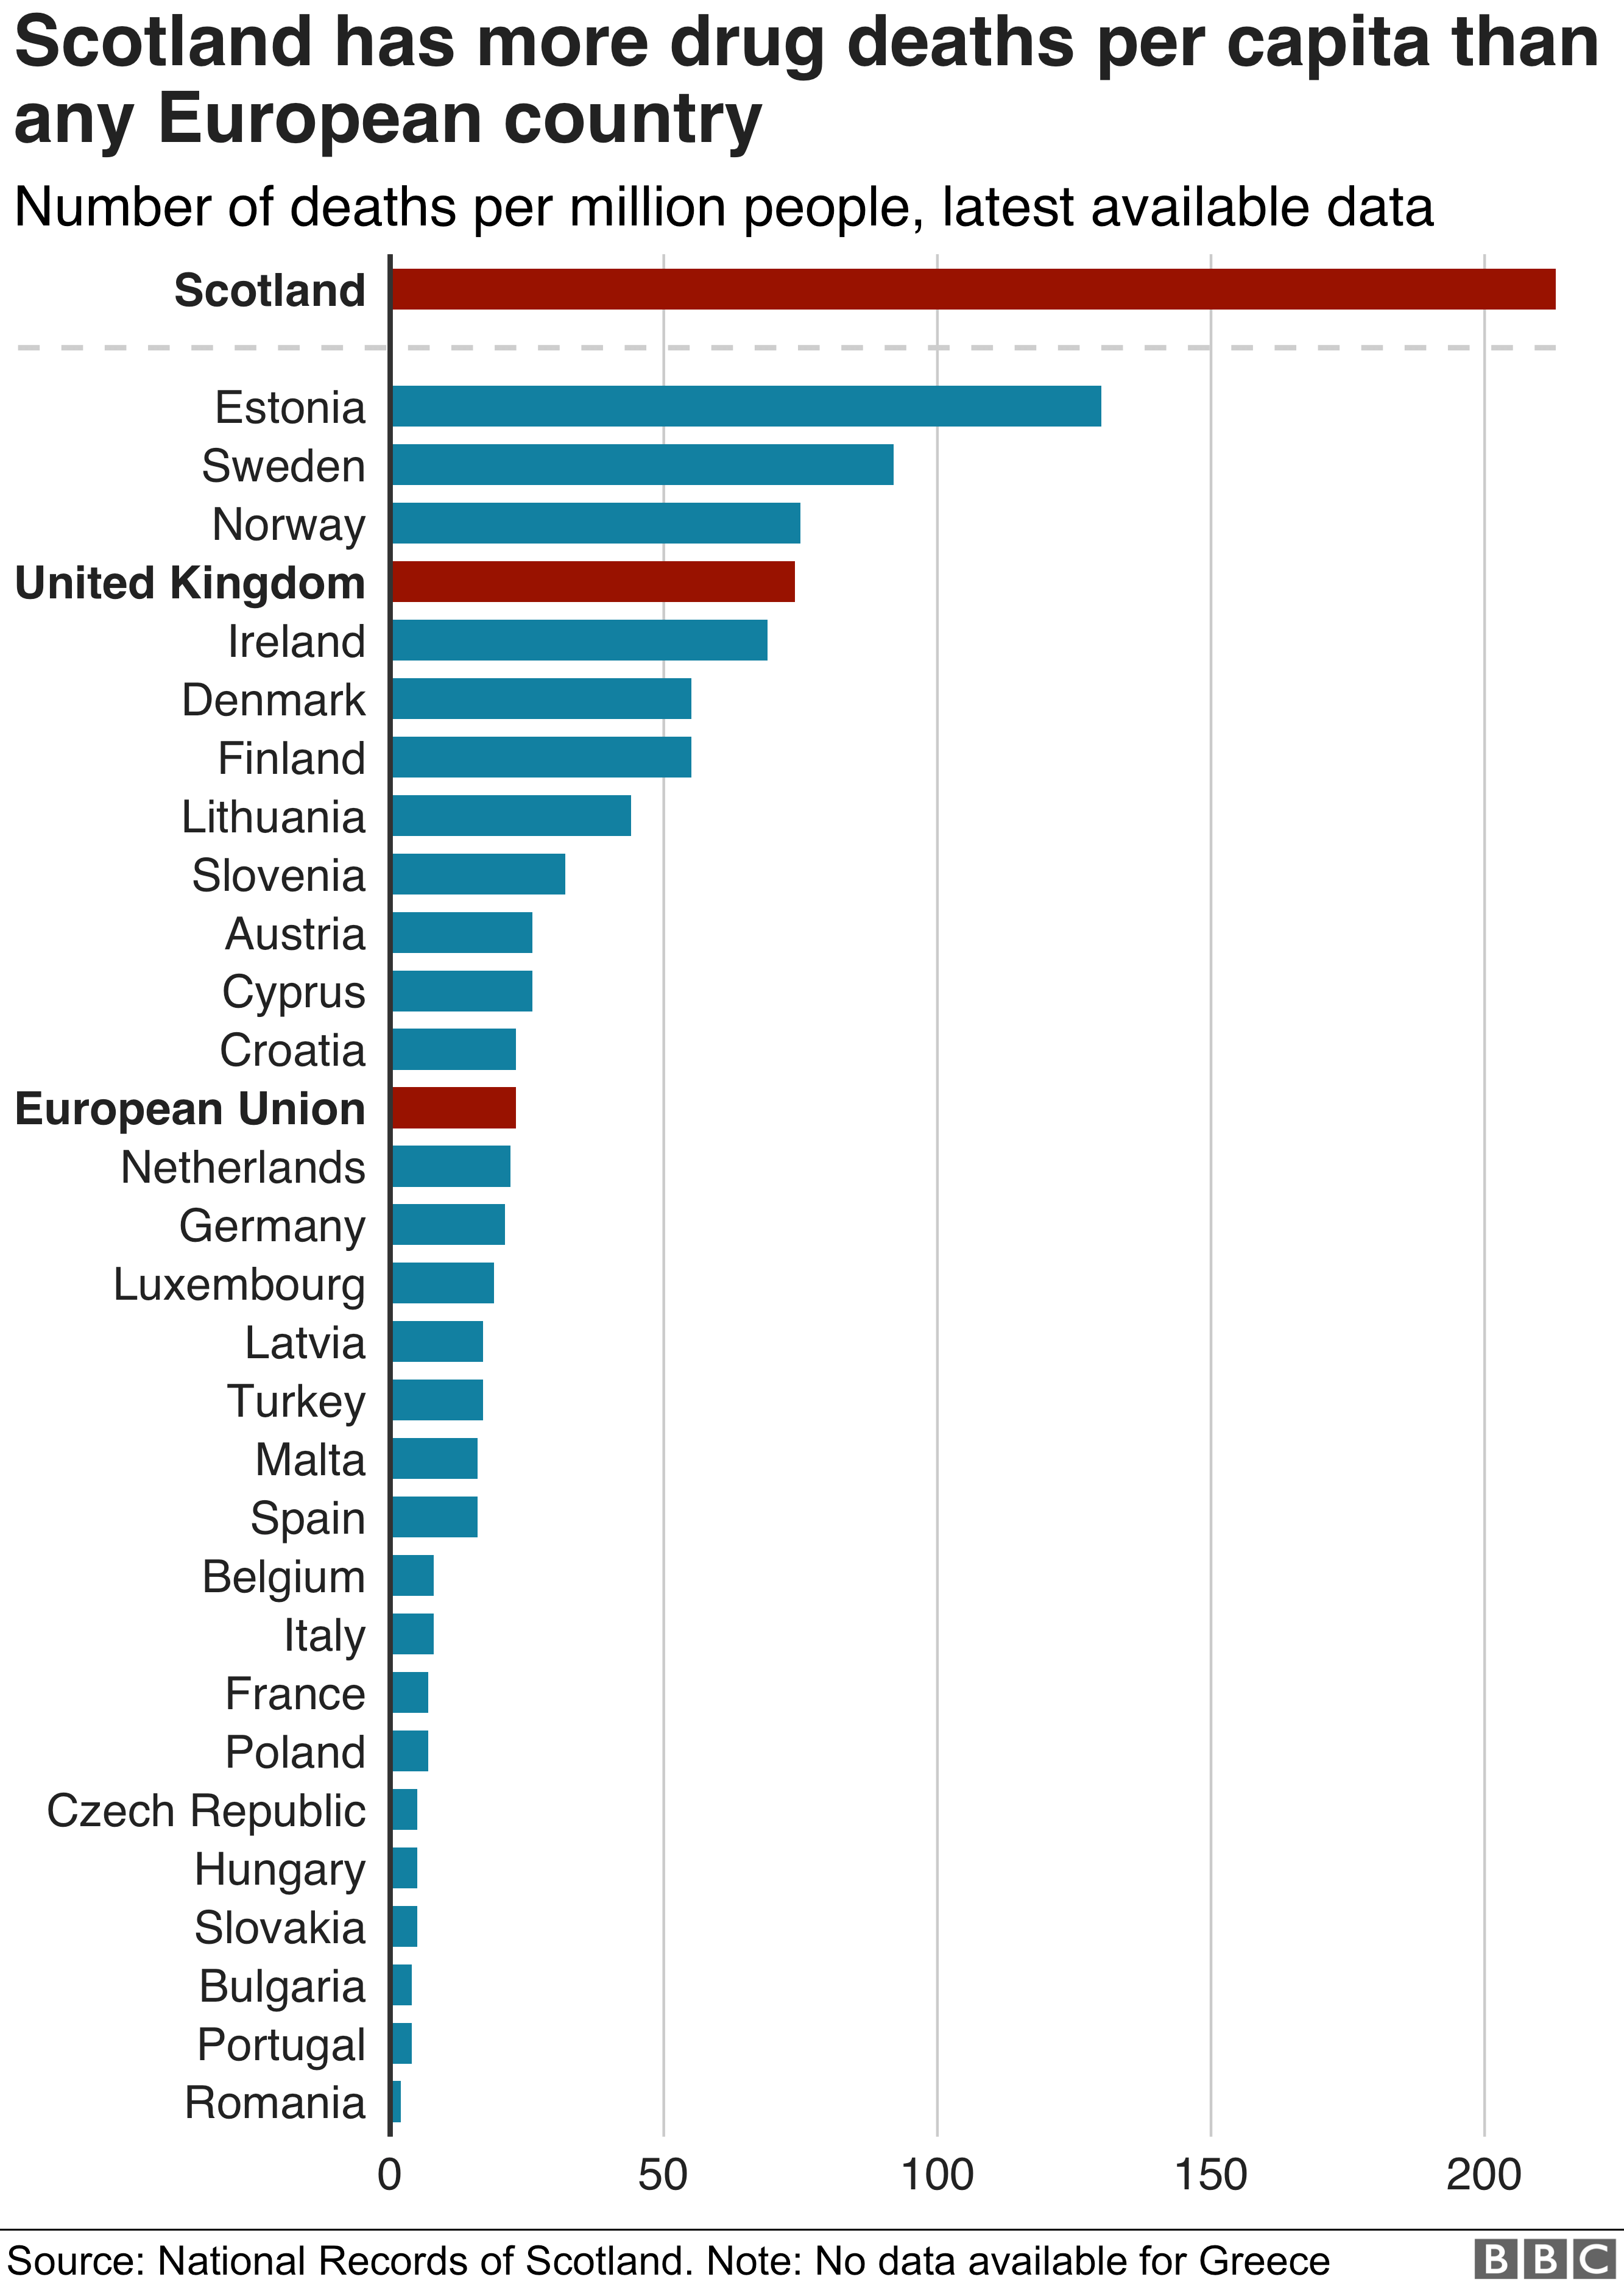 Scotland has more drug deaths per 1,000 people (213) than any other EU country. The EU average is 23